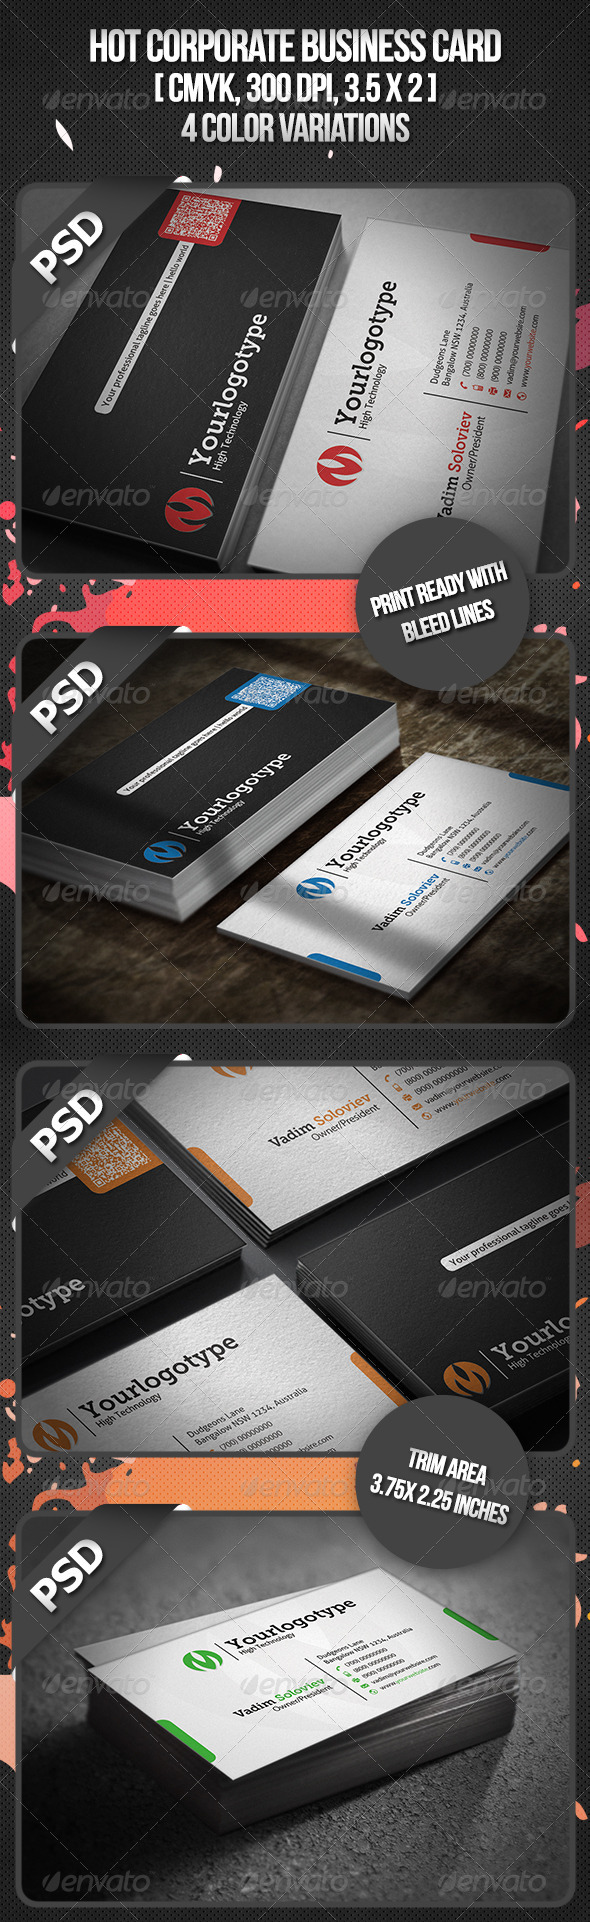 GraphicRiver Hot Corporate Business Card 3330067